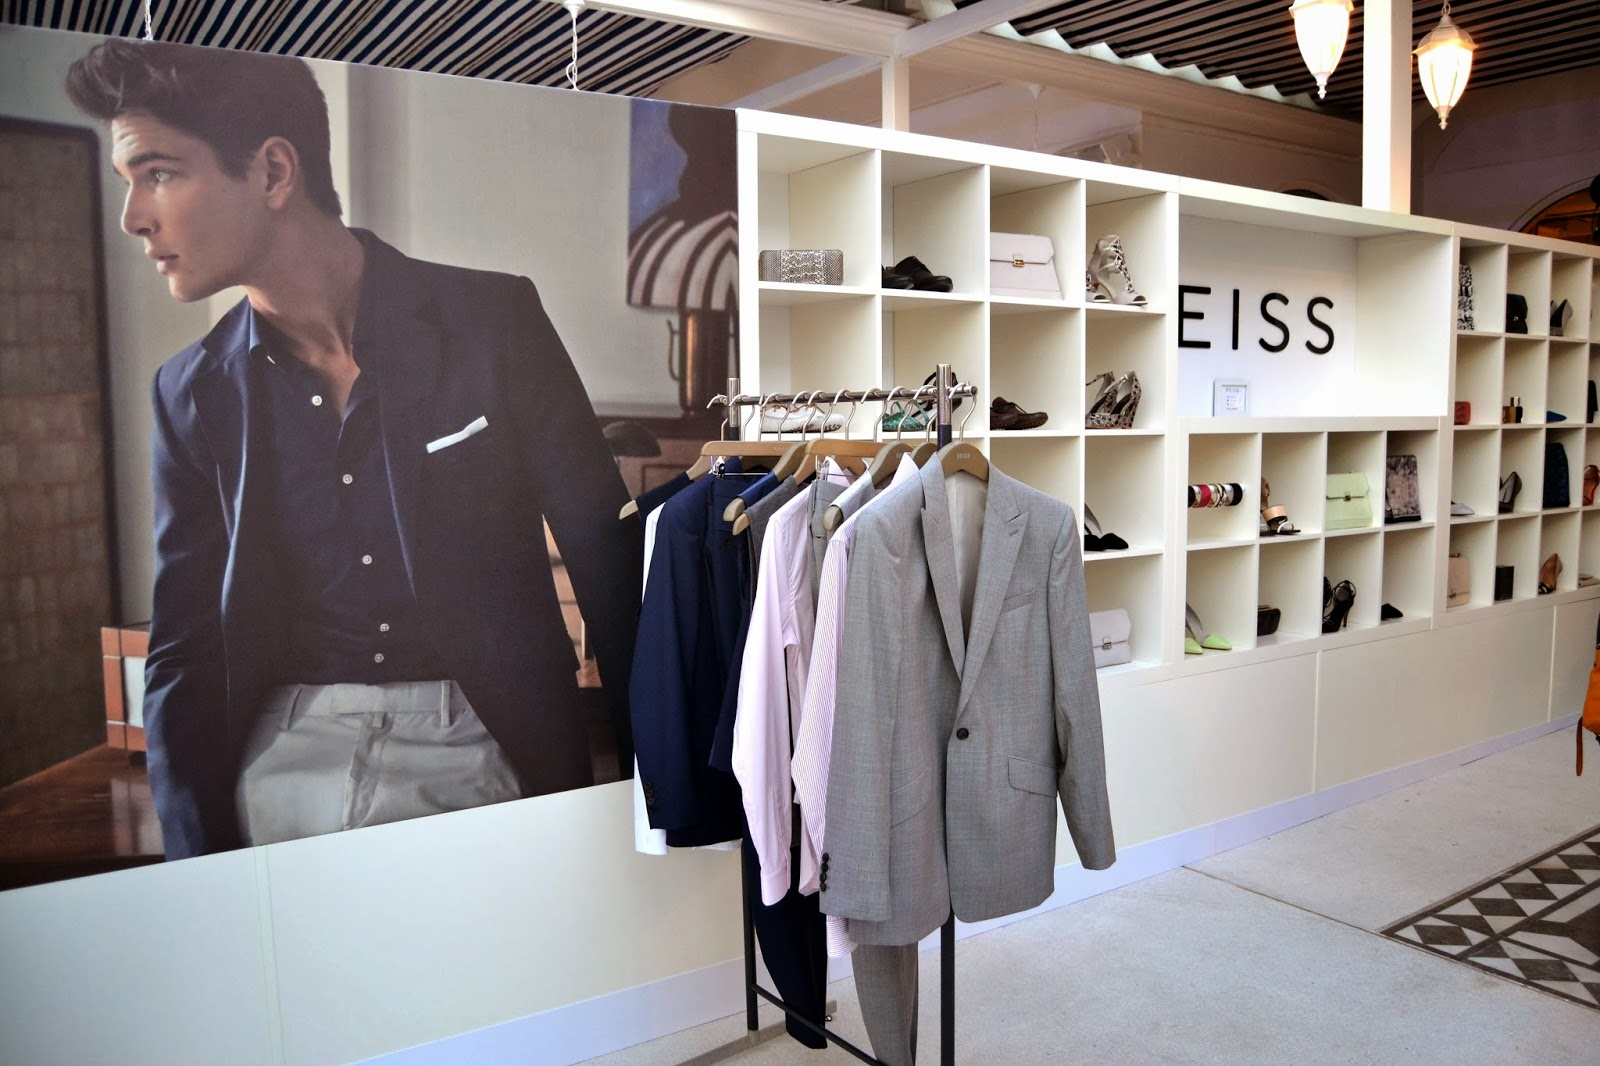 http://thestylechoreo.blogspot.ae/2014/03/reiss-ss14-launch-with-nod-of-french.html